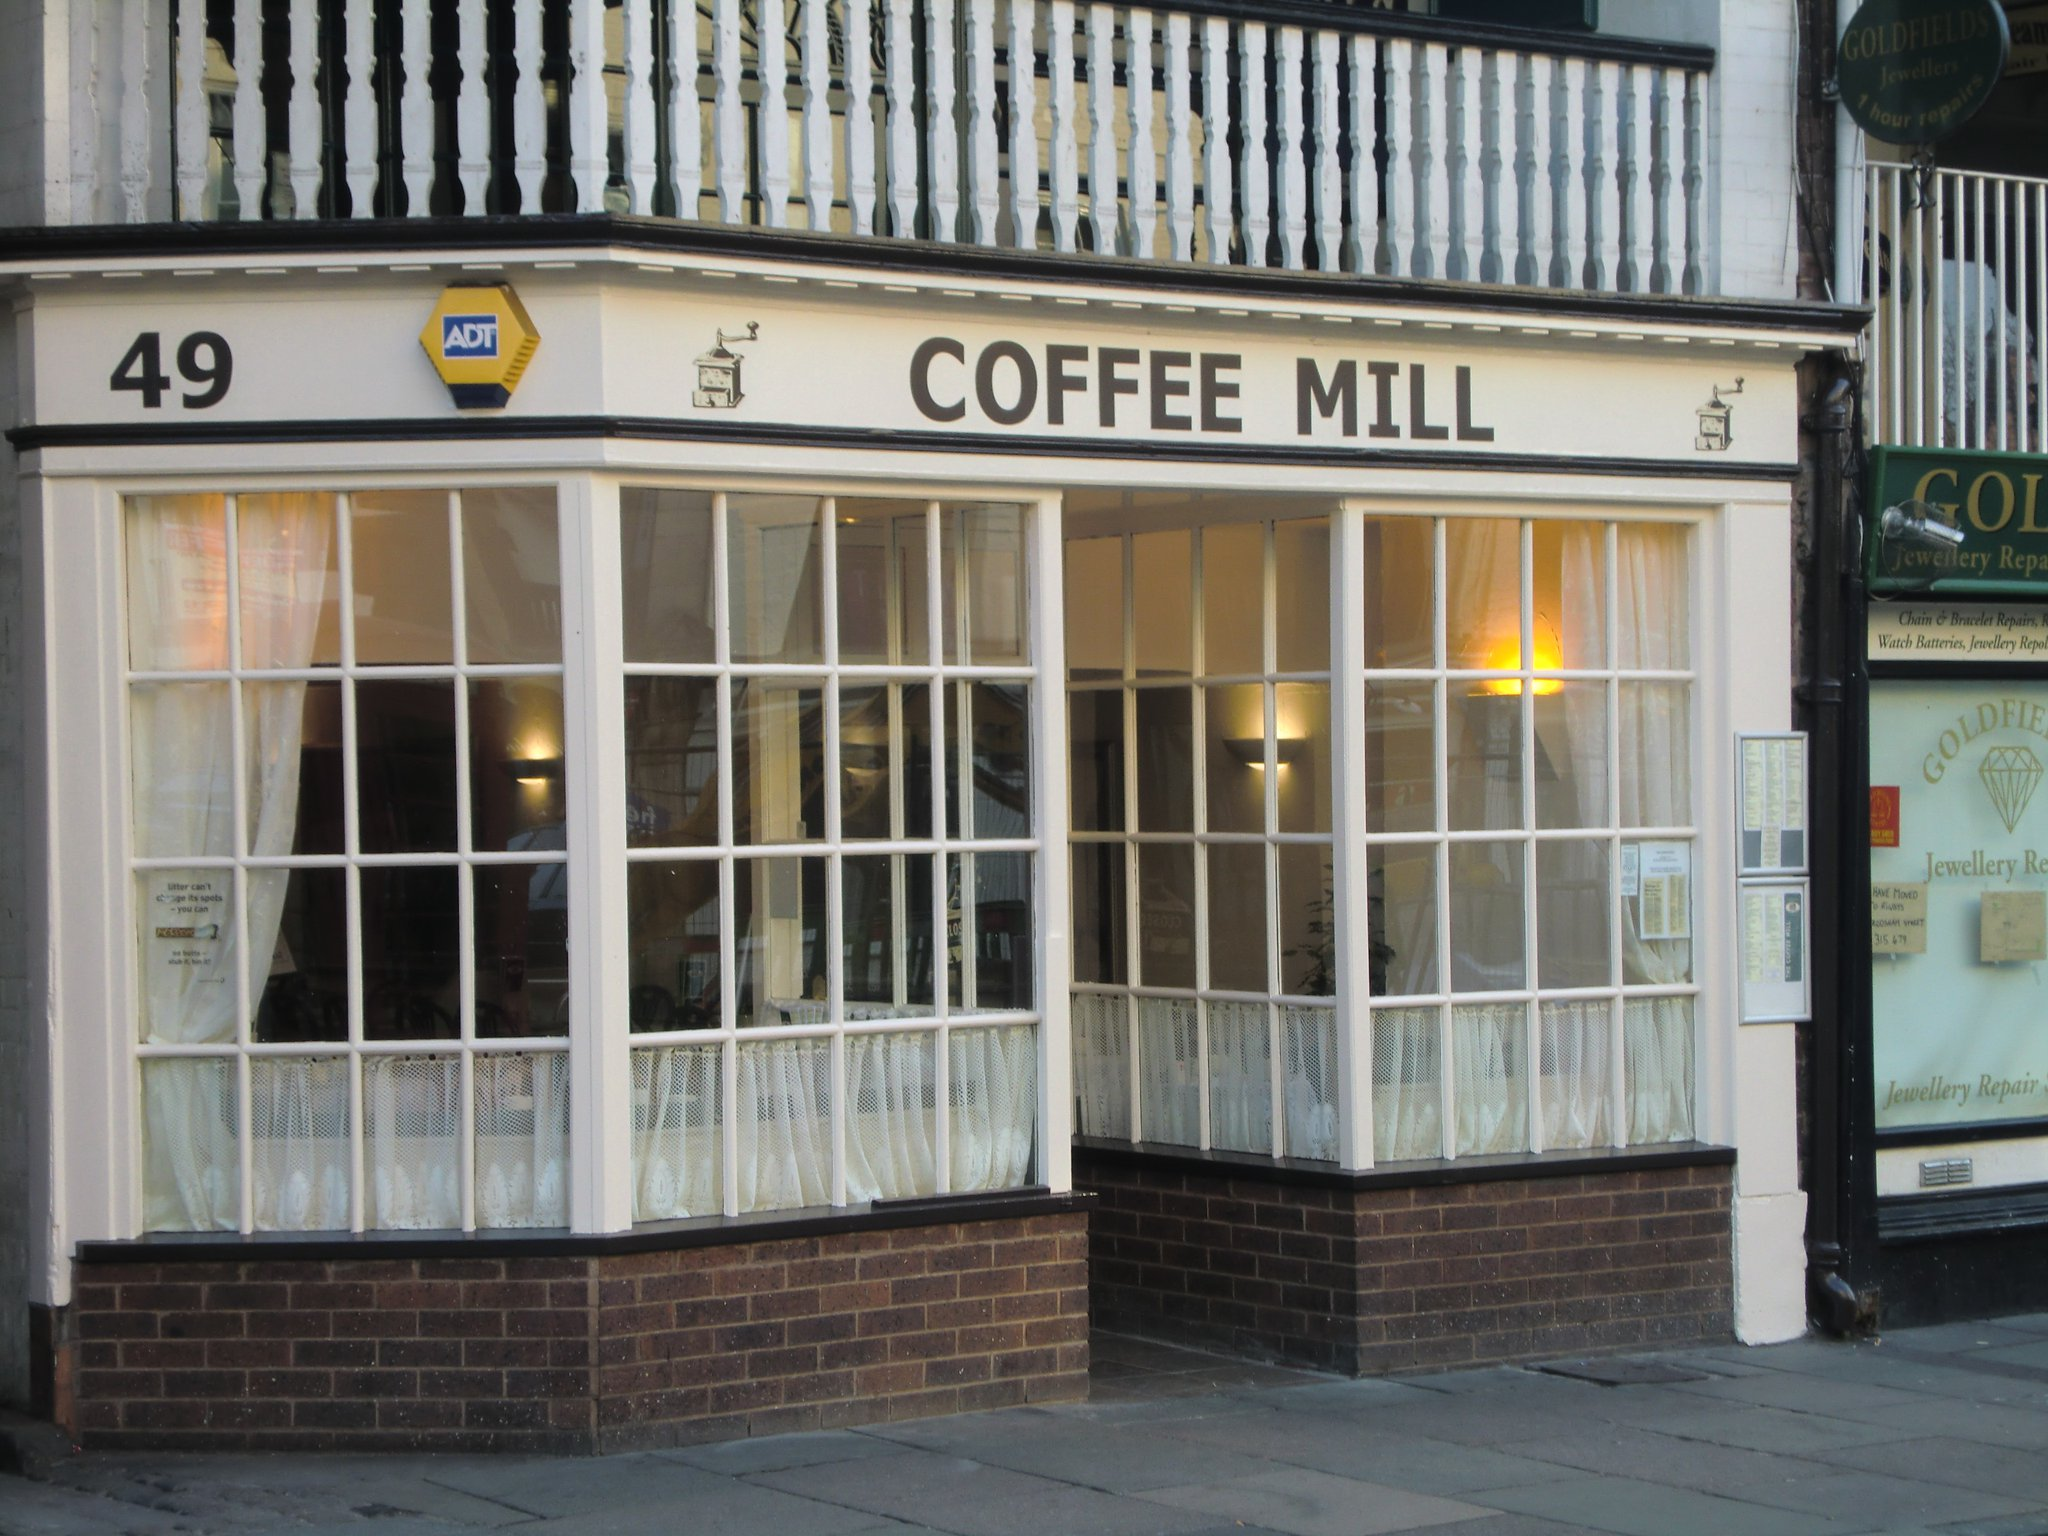 The Coffee Mill